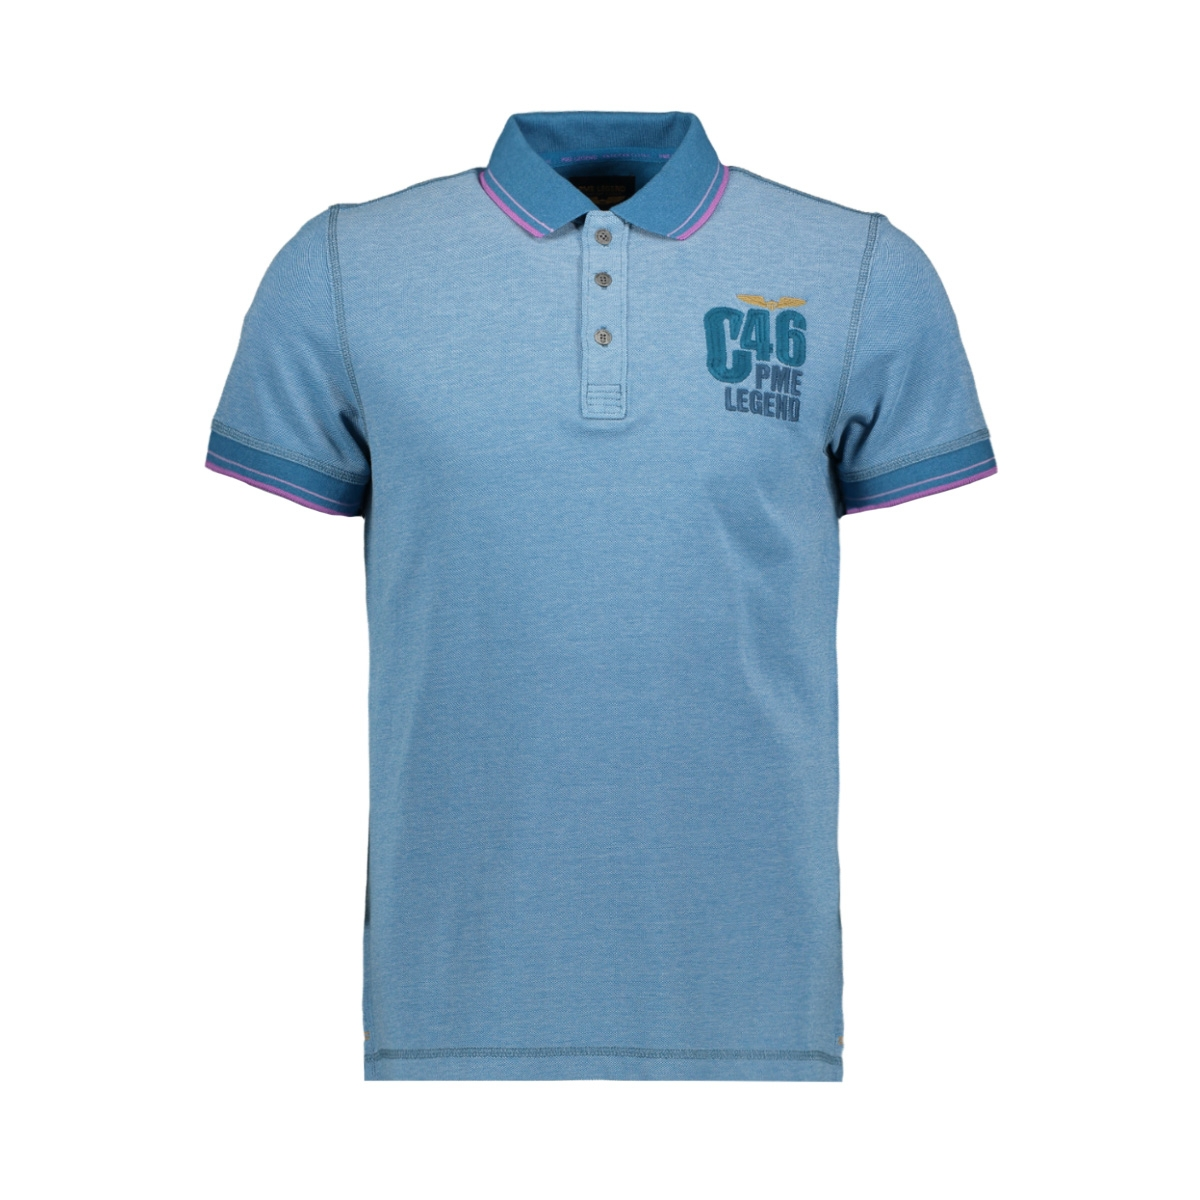 shortsleeve poloshirt ppss194864 pme legend polo 5292